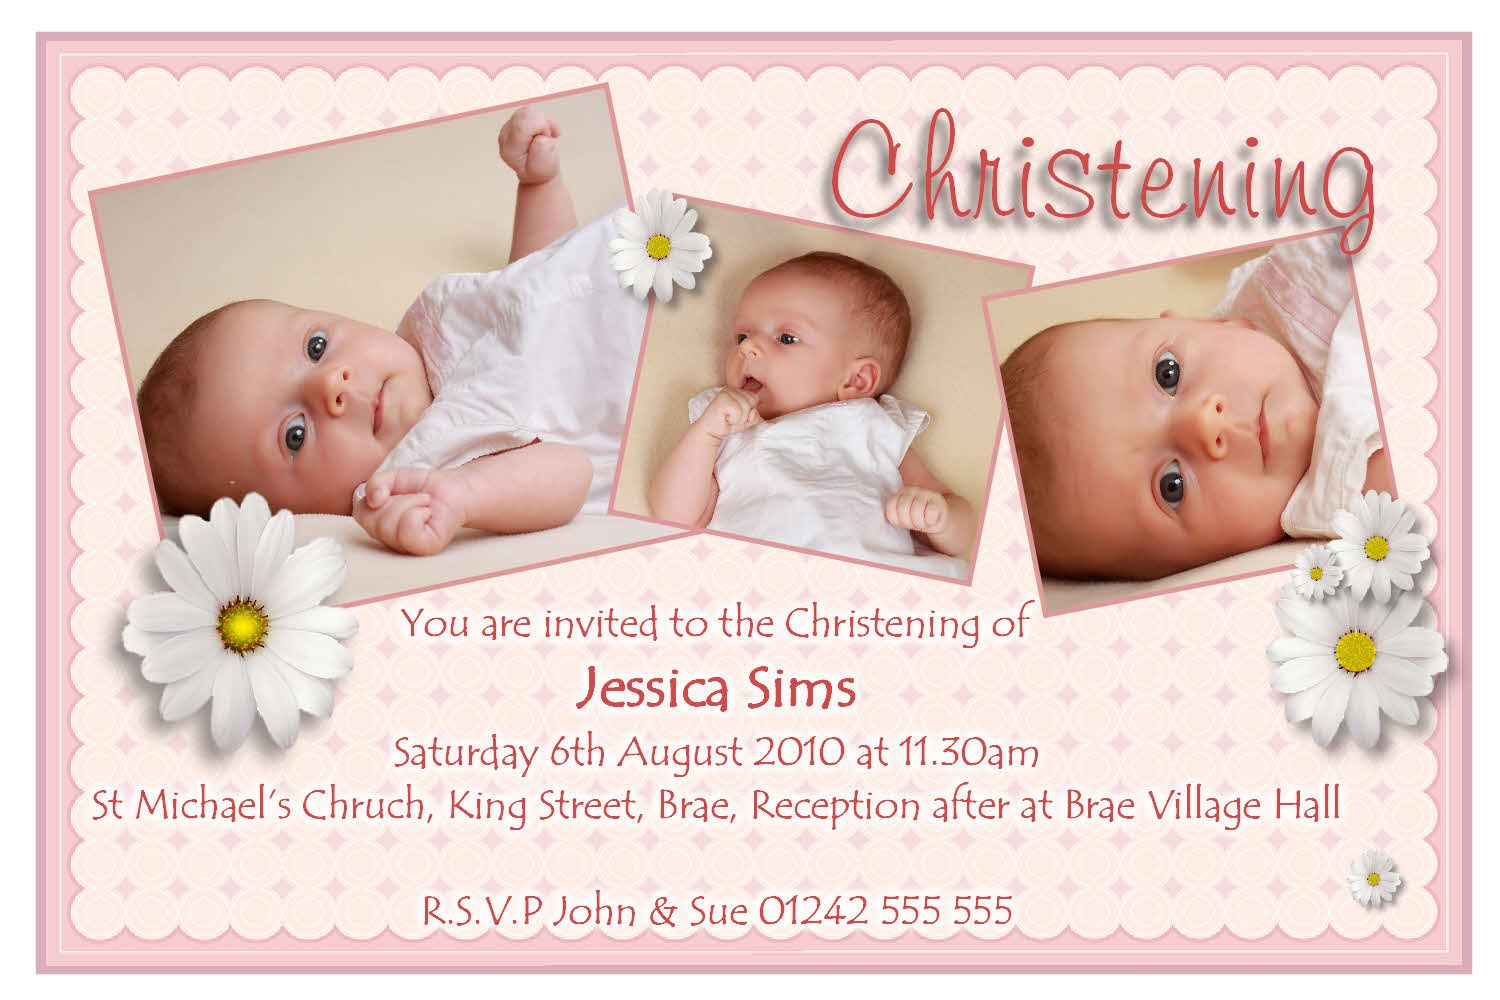 christening invitation templates download christening cards for boys baptism cards boy christening cheap - Invitation Card For Christening